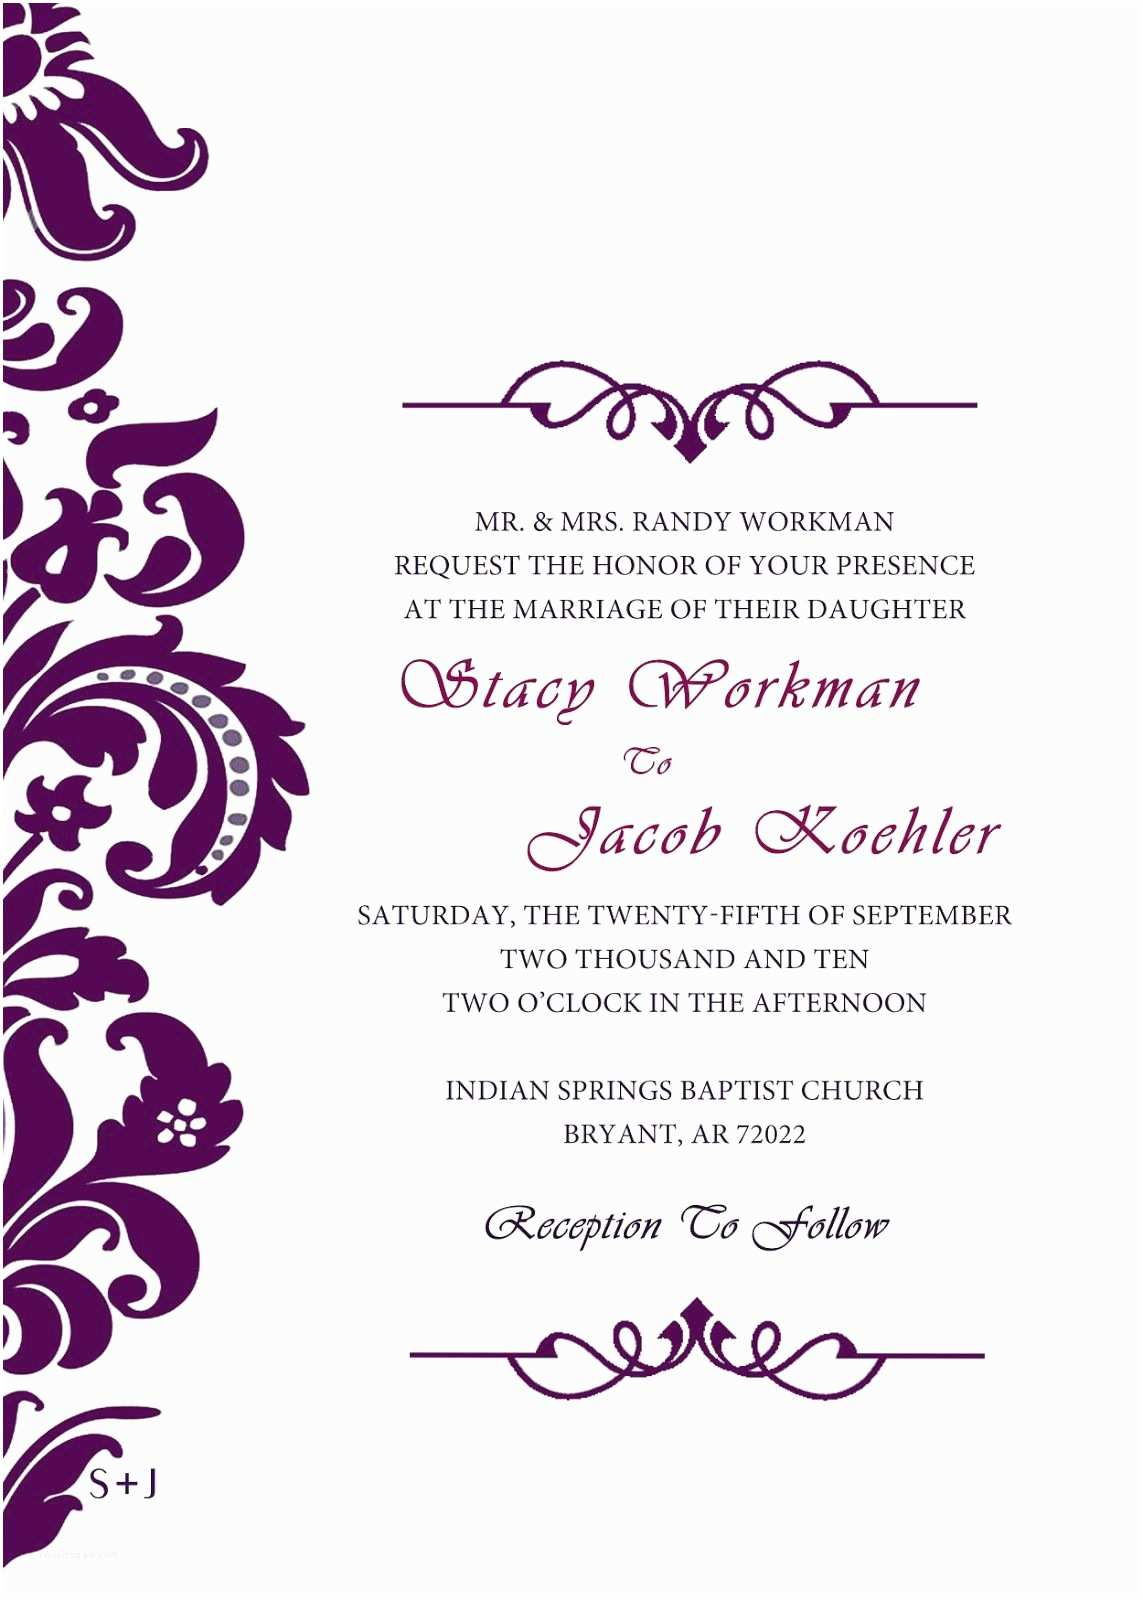 Create Indian Wedding Invitation Card Online Free Invitation Cards Printing Line Wedding Invitation